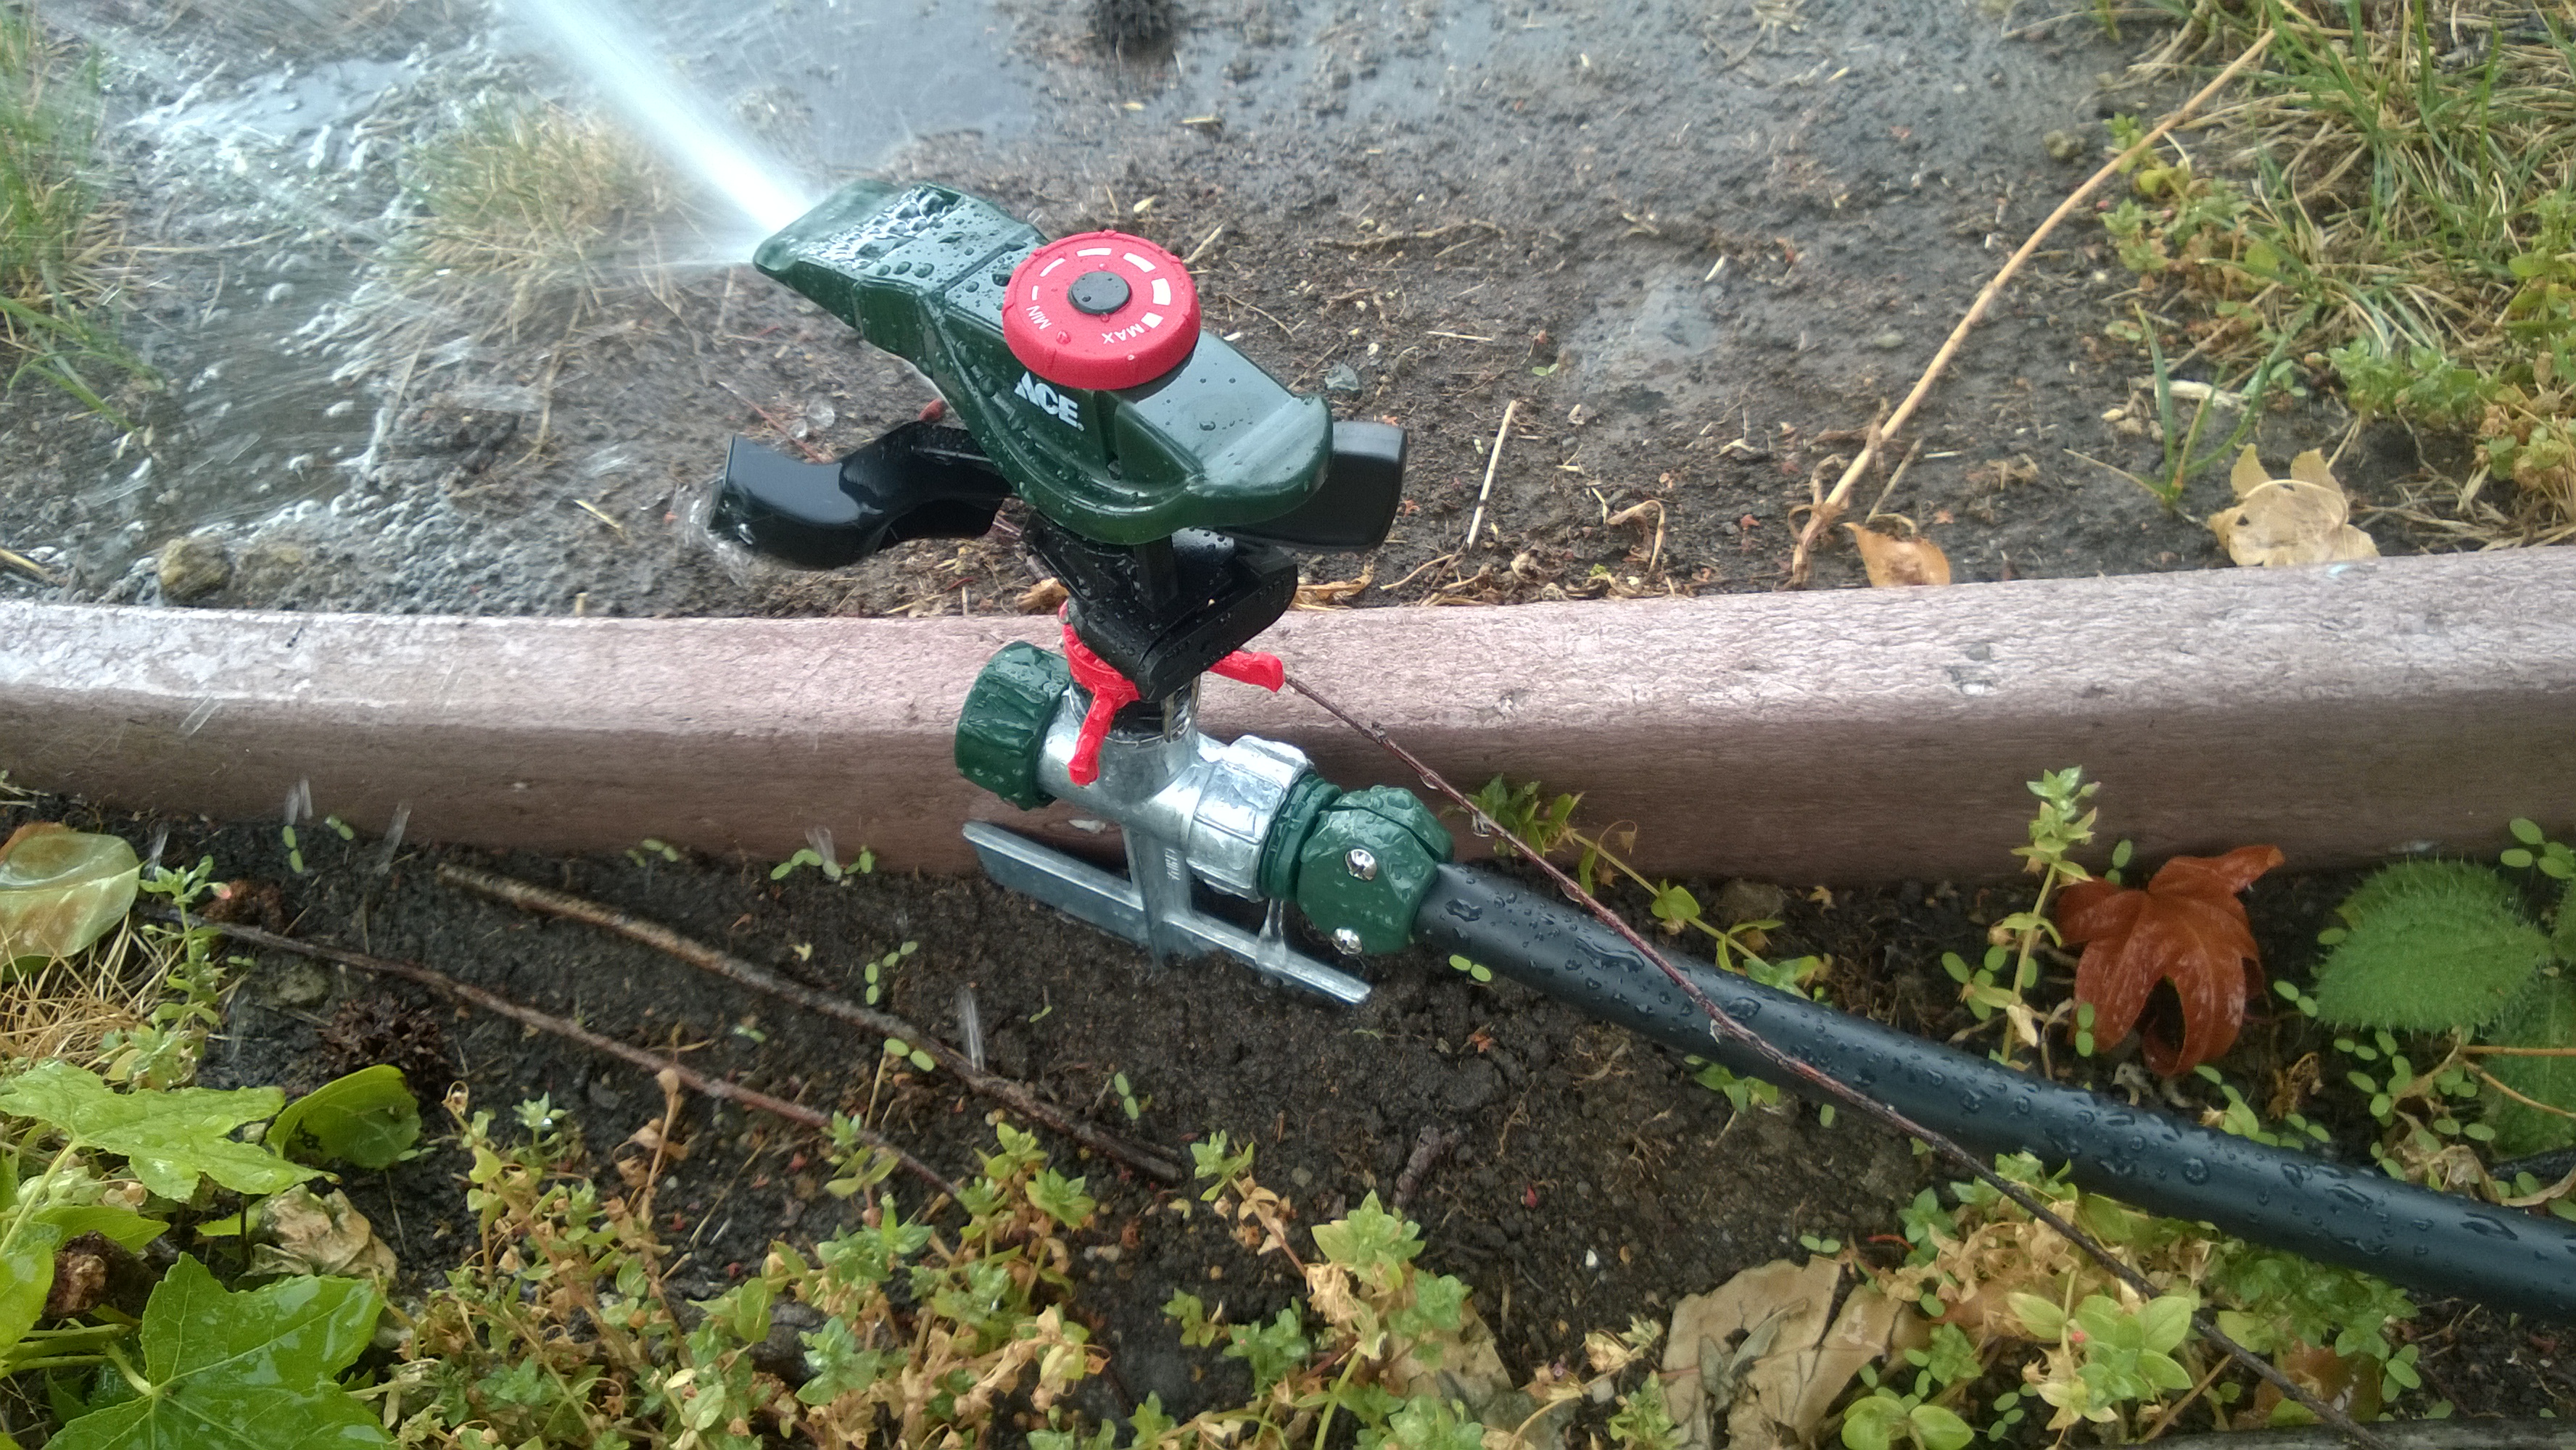 DIY How To Build a Garden Hose from Drip Irrigation Parts